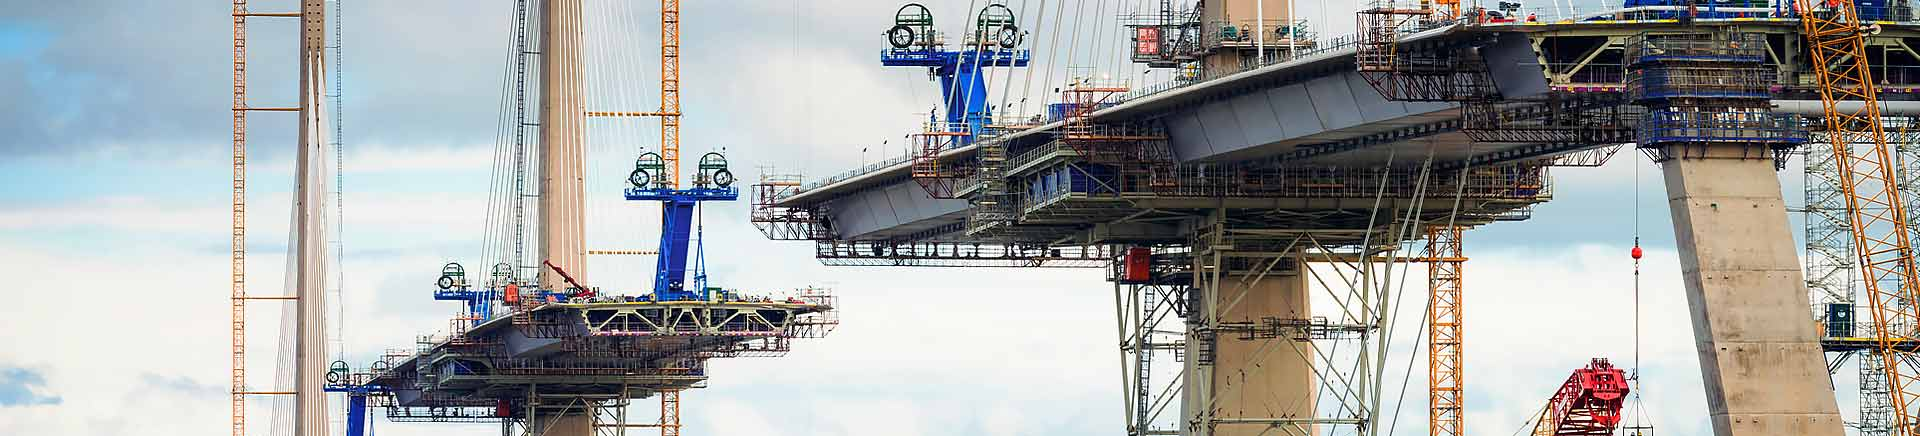 Rigging-and-Erection-Plan-Engineering-r2-1